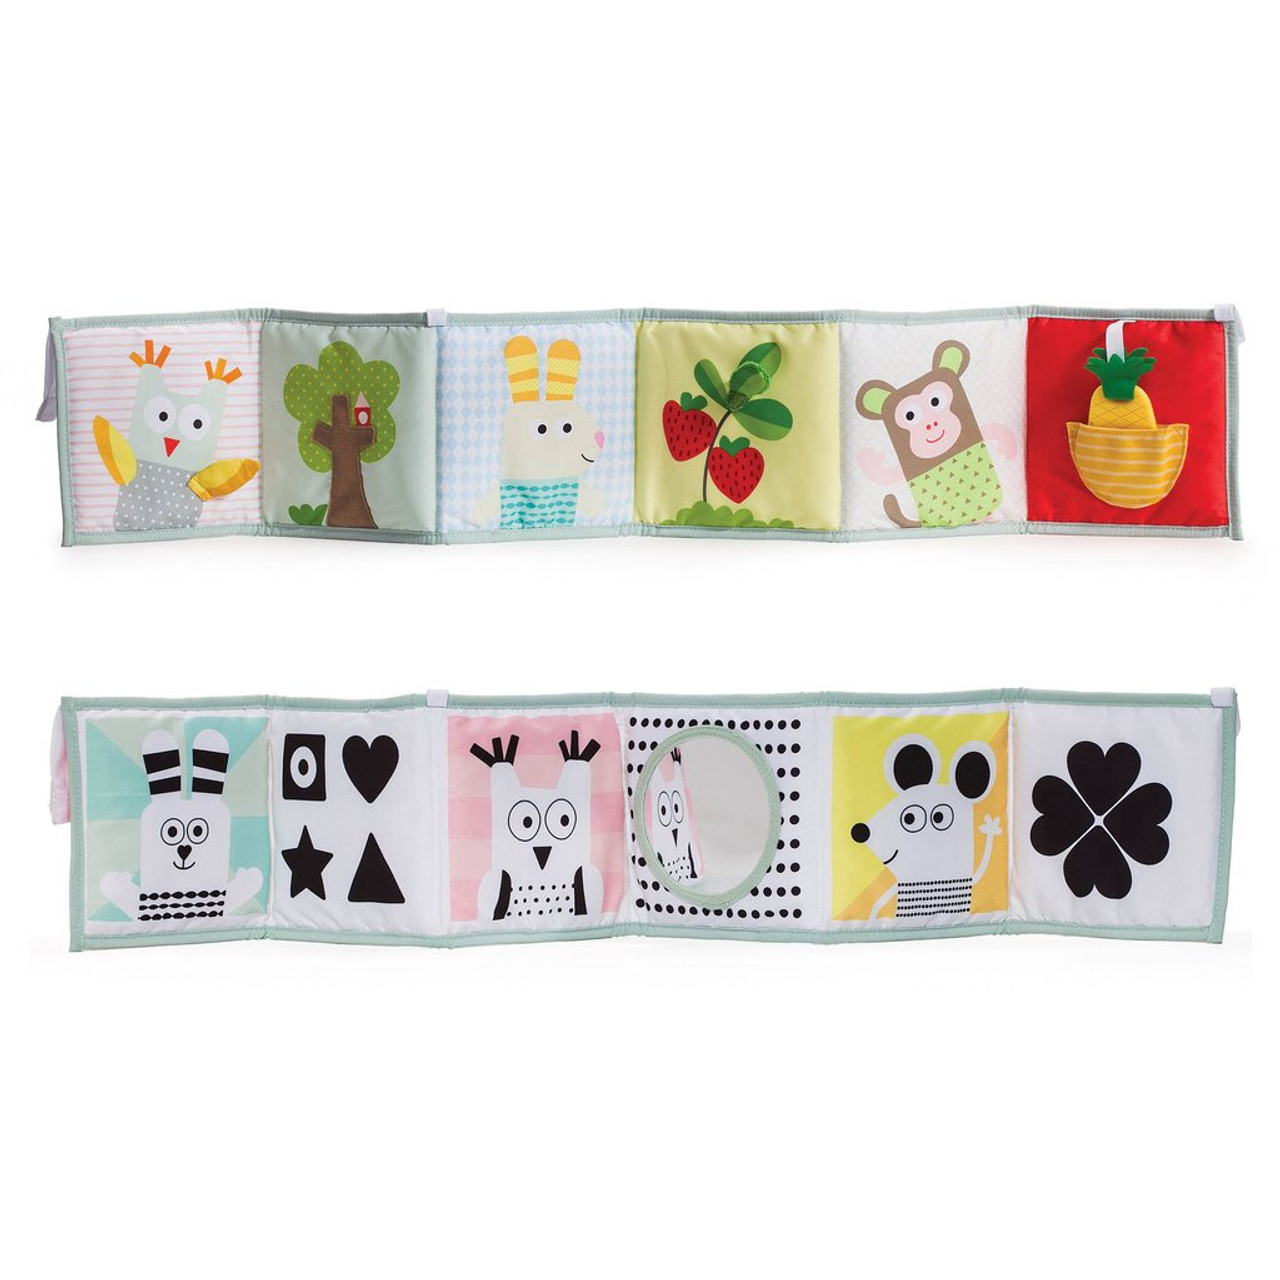 Taf Toys 3 in 1 Soft Baby Book